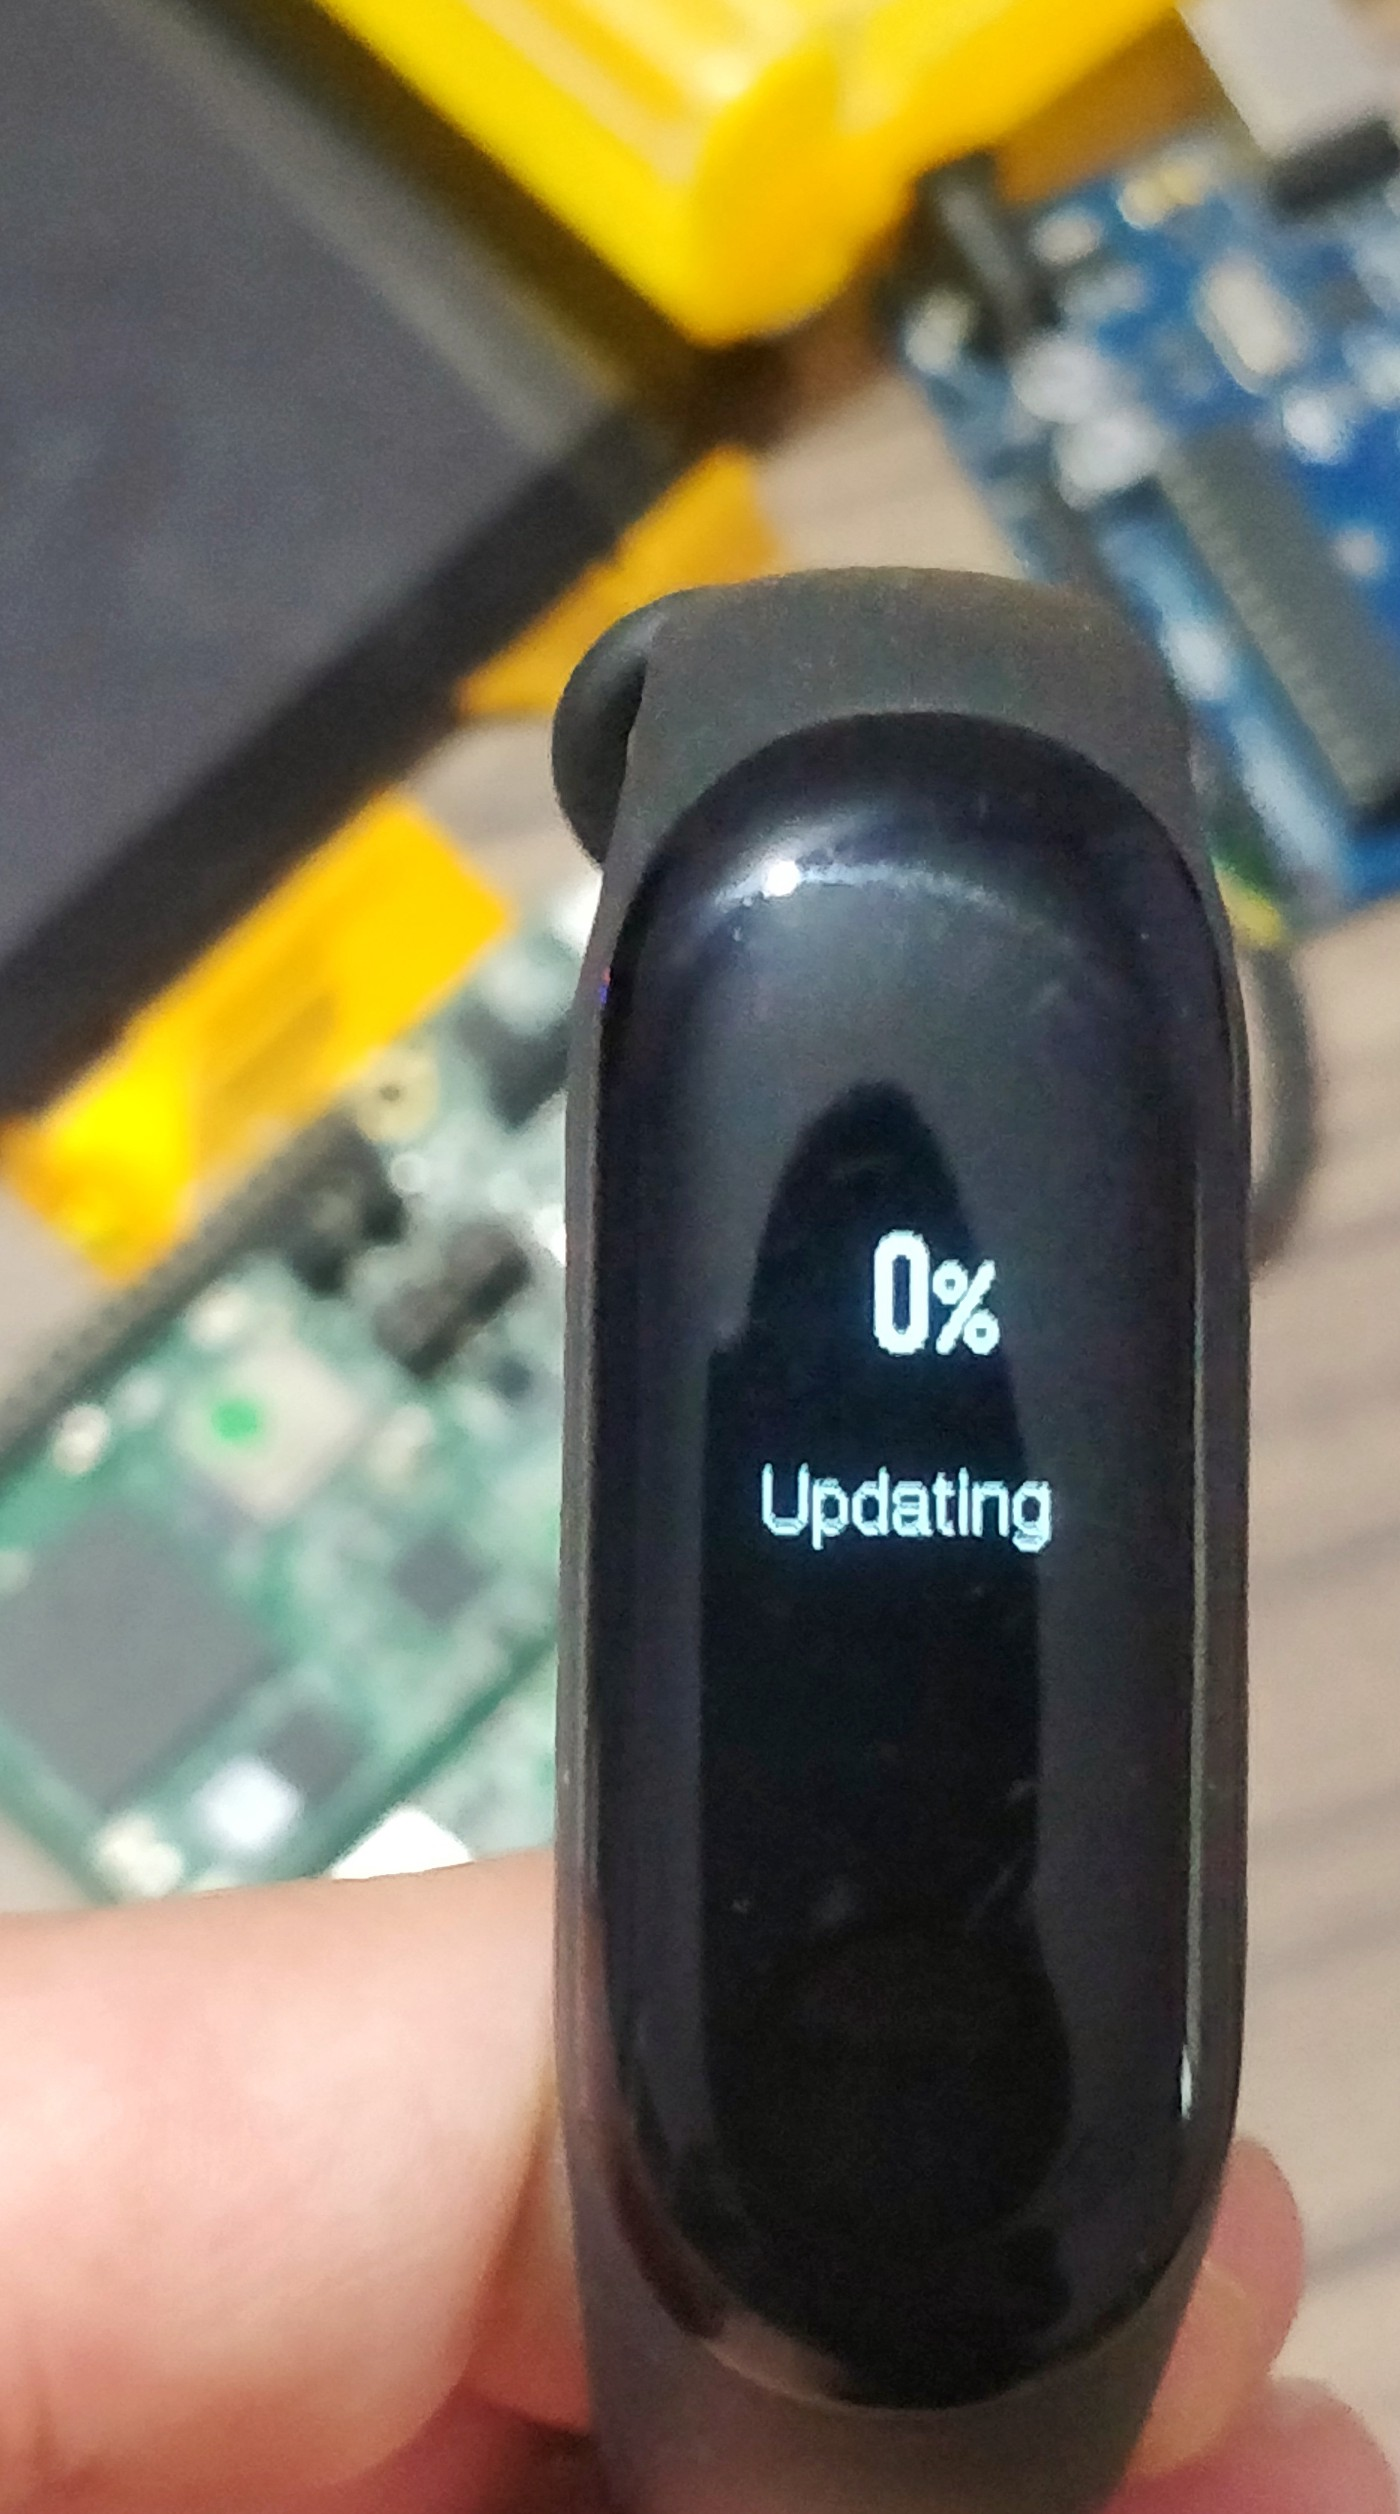 I hacked MiBand 3, and here is how I did it Part II — Reverse